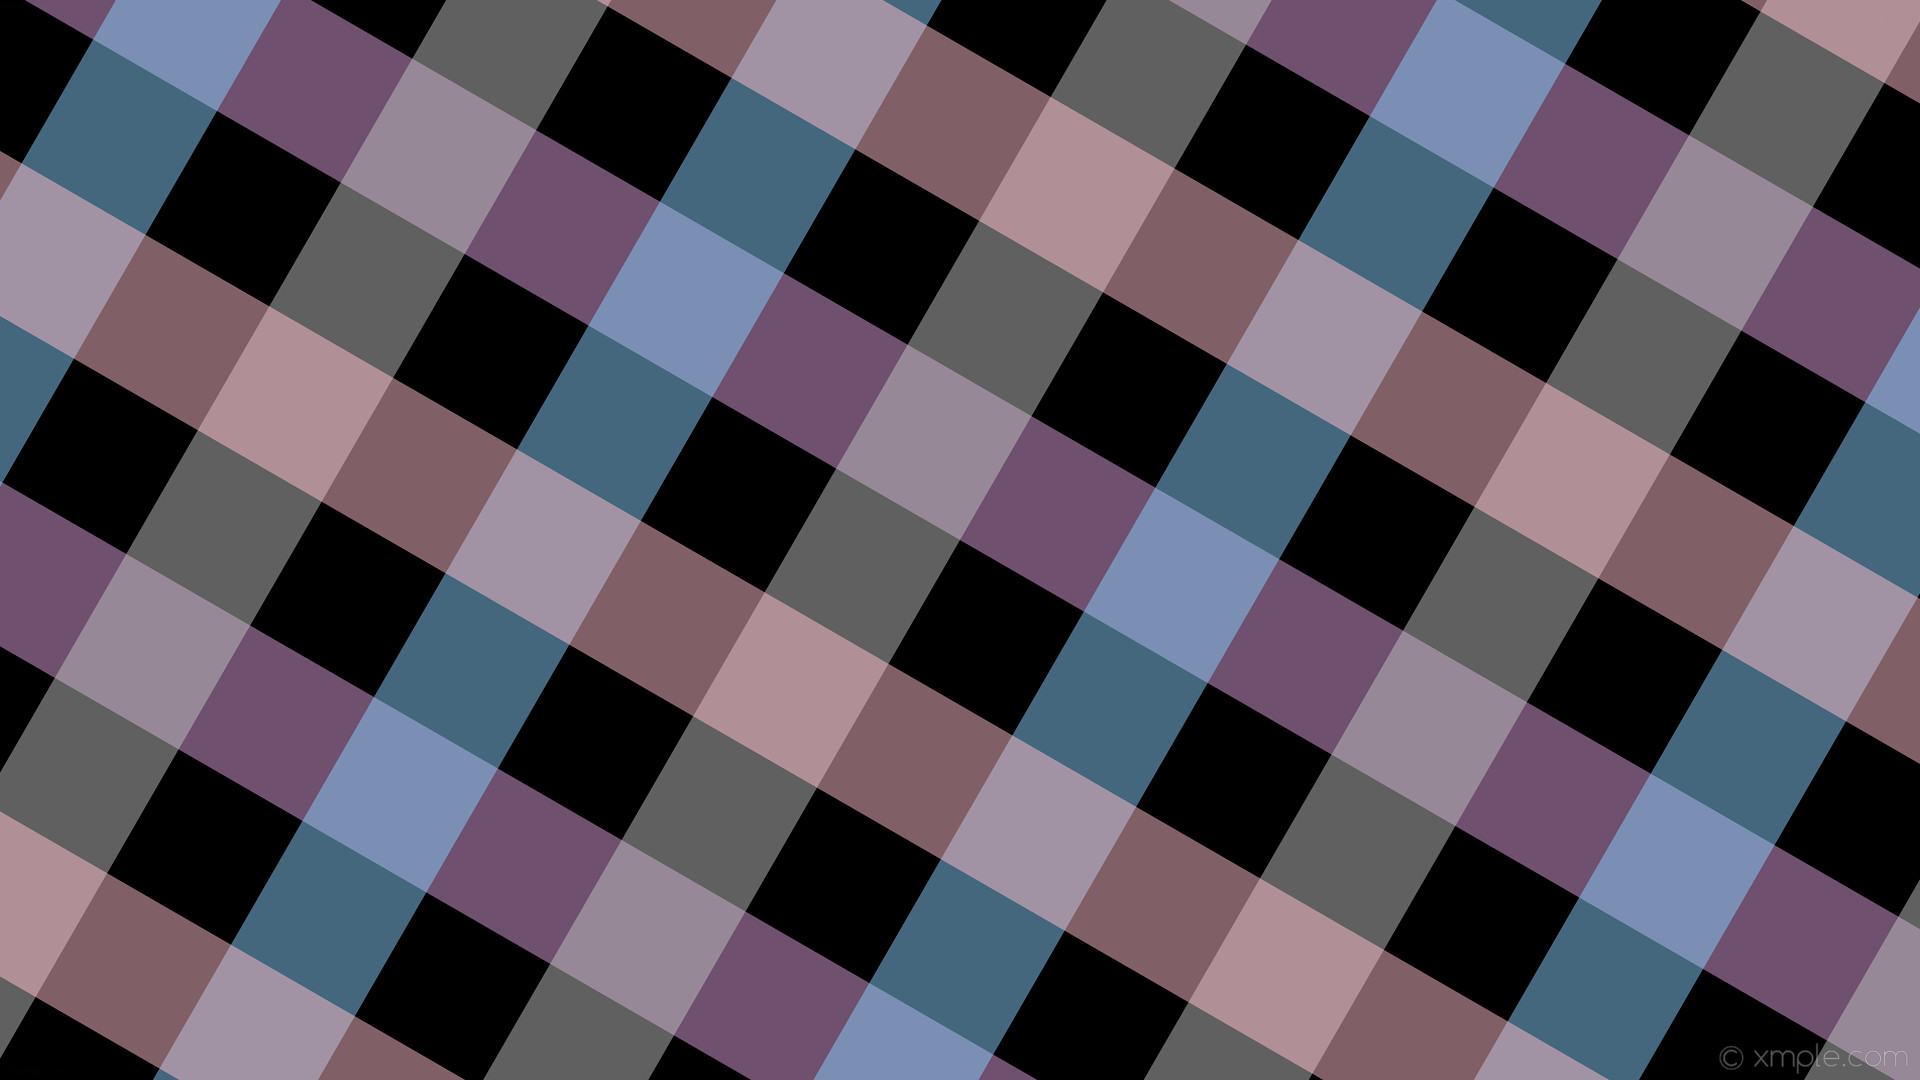 1920x1080 wallpaper purple blue pink striped penta gingham black grey plum silver  light sky blue #000000